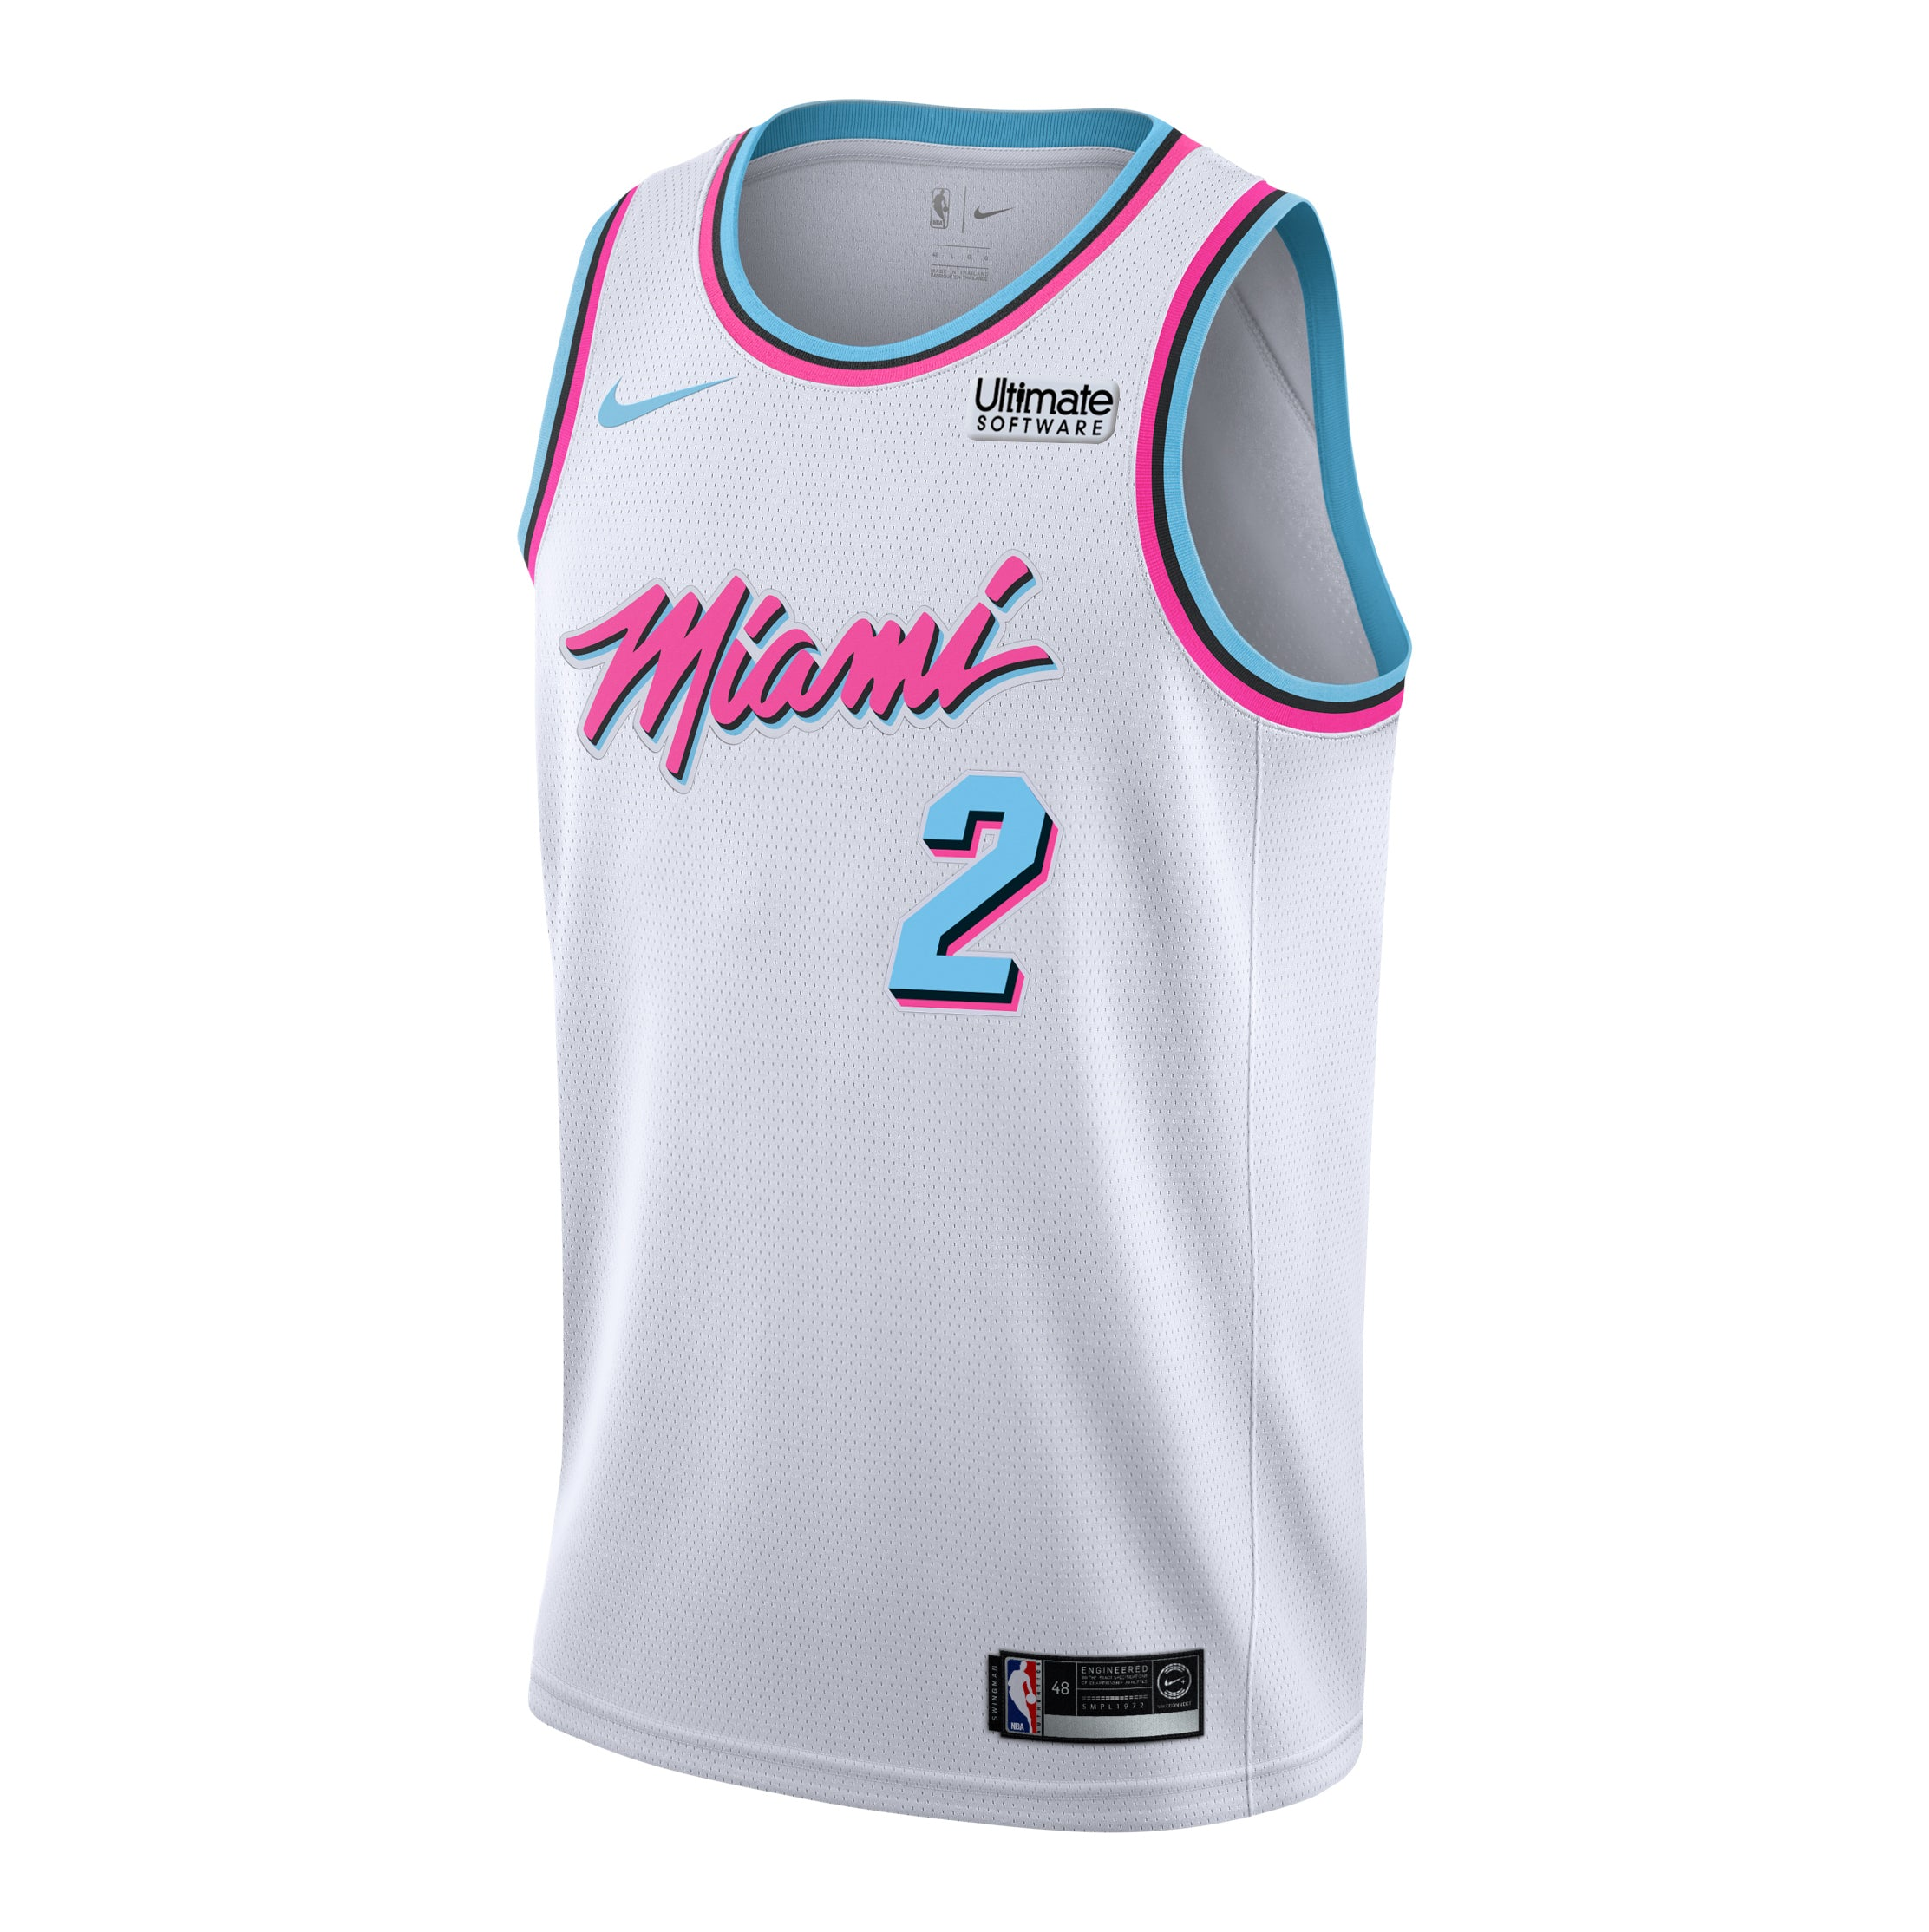 59834ba6629f Wayne Ellington Nike Miami HEAT Youth Vice Uniform City Edition Swingman  Jersey - featured image